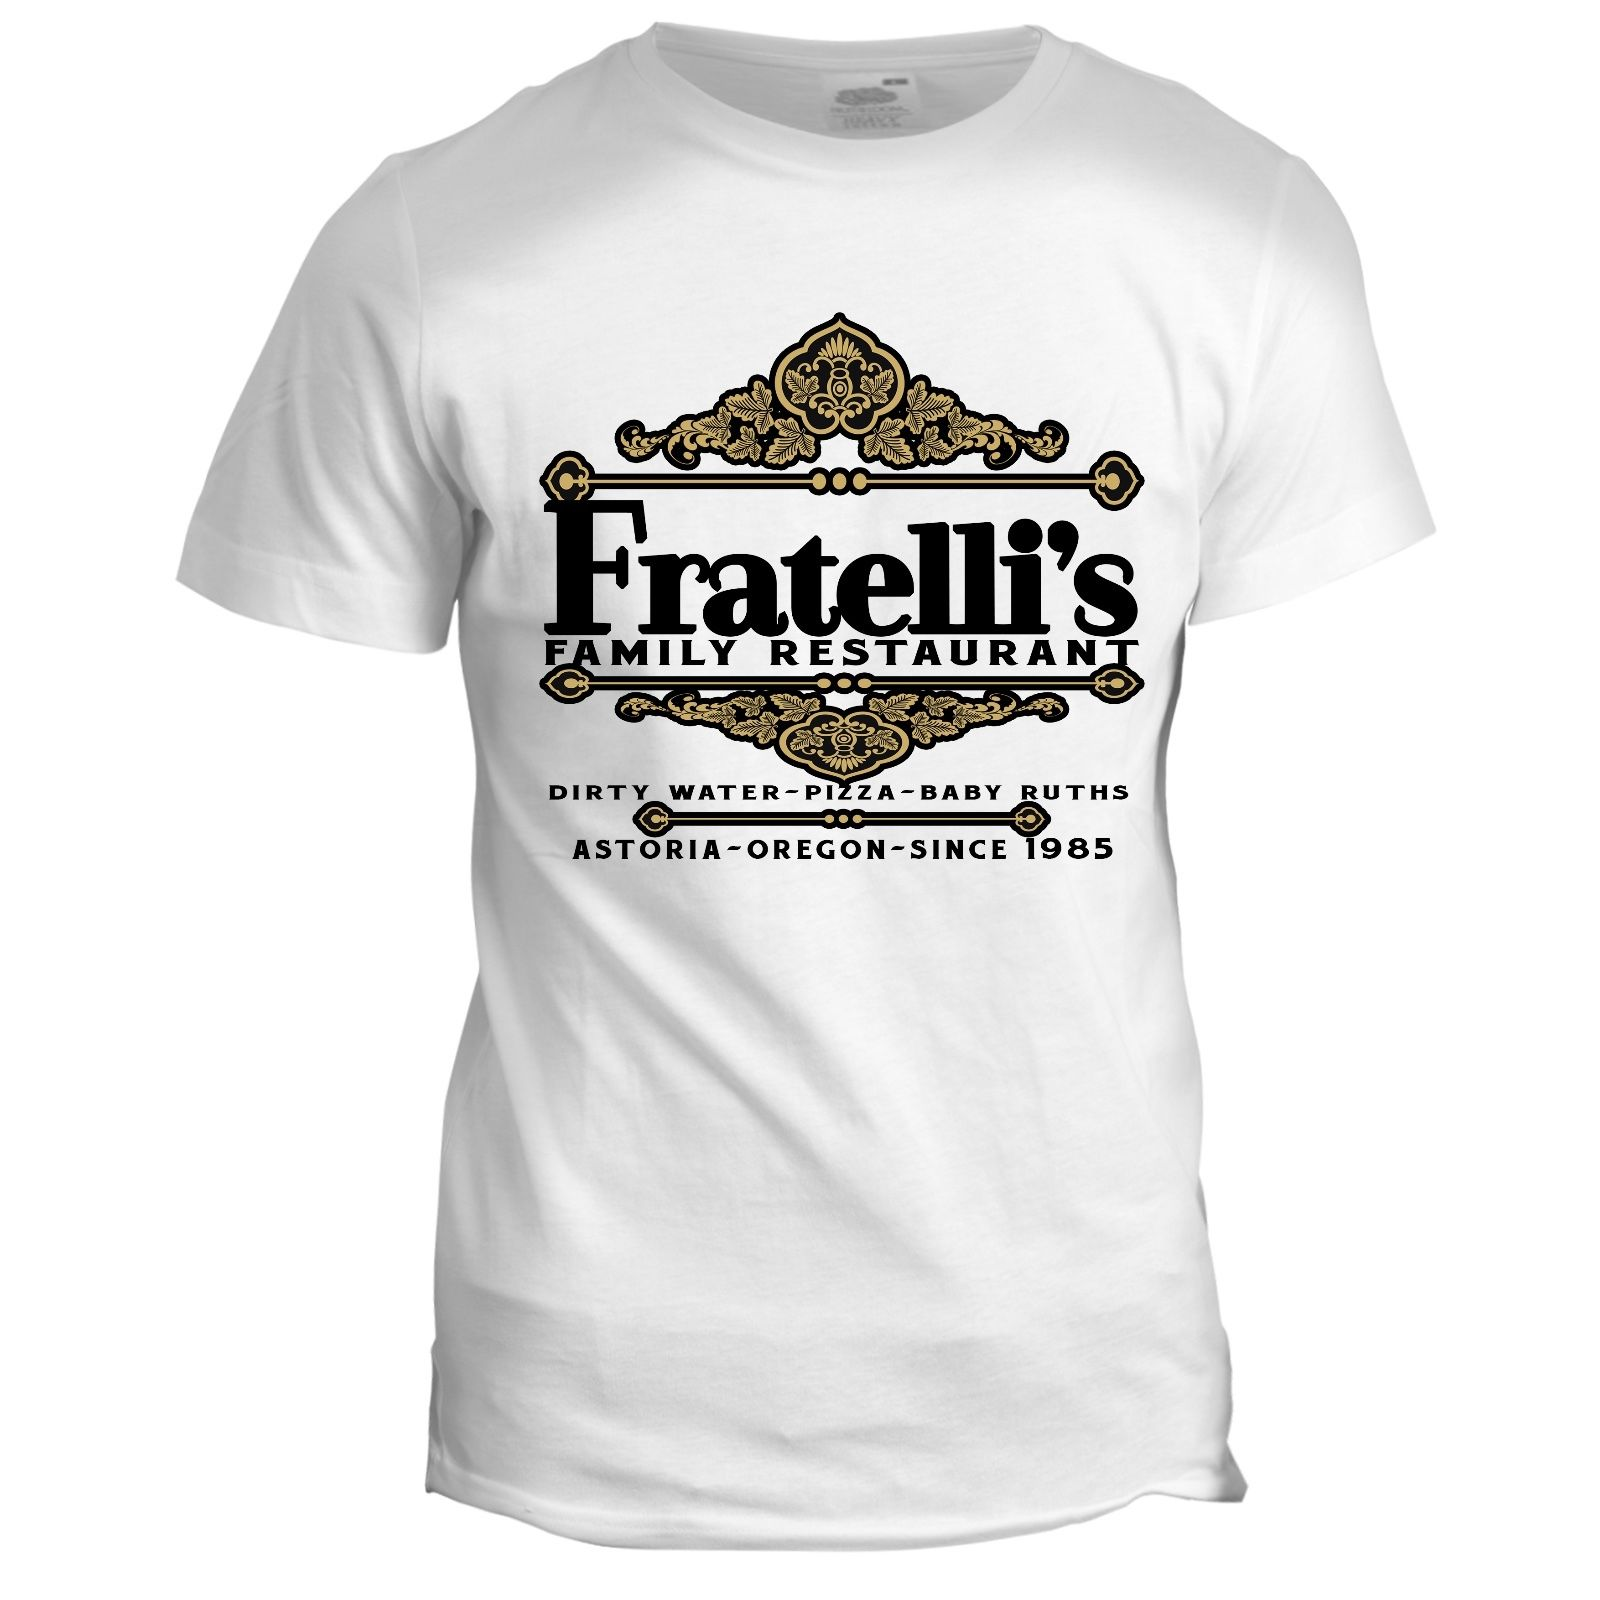 Fratelli's Restaurant Inspired The Goonies 80s Retro Italian Movie Film T Shirt New T Shirts Funny Tops Tee free shipping image